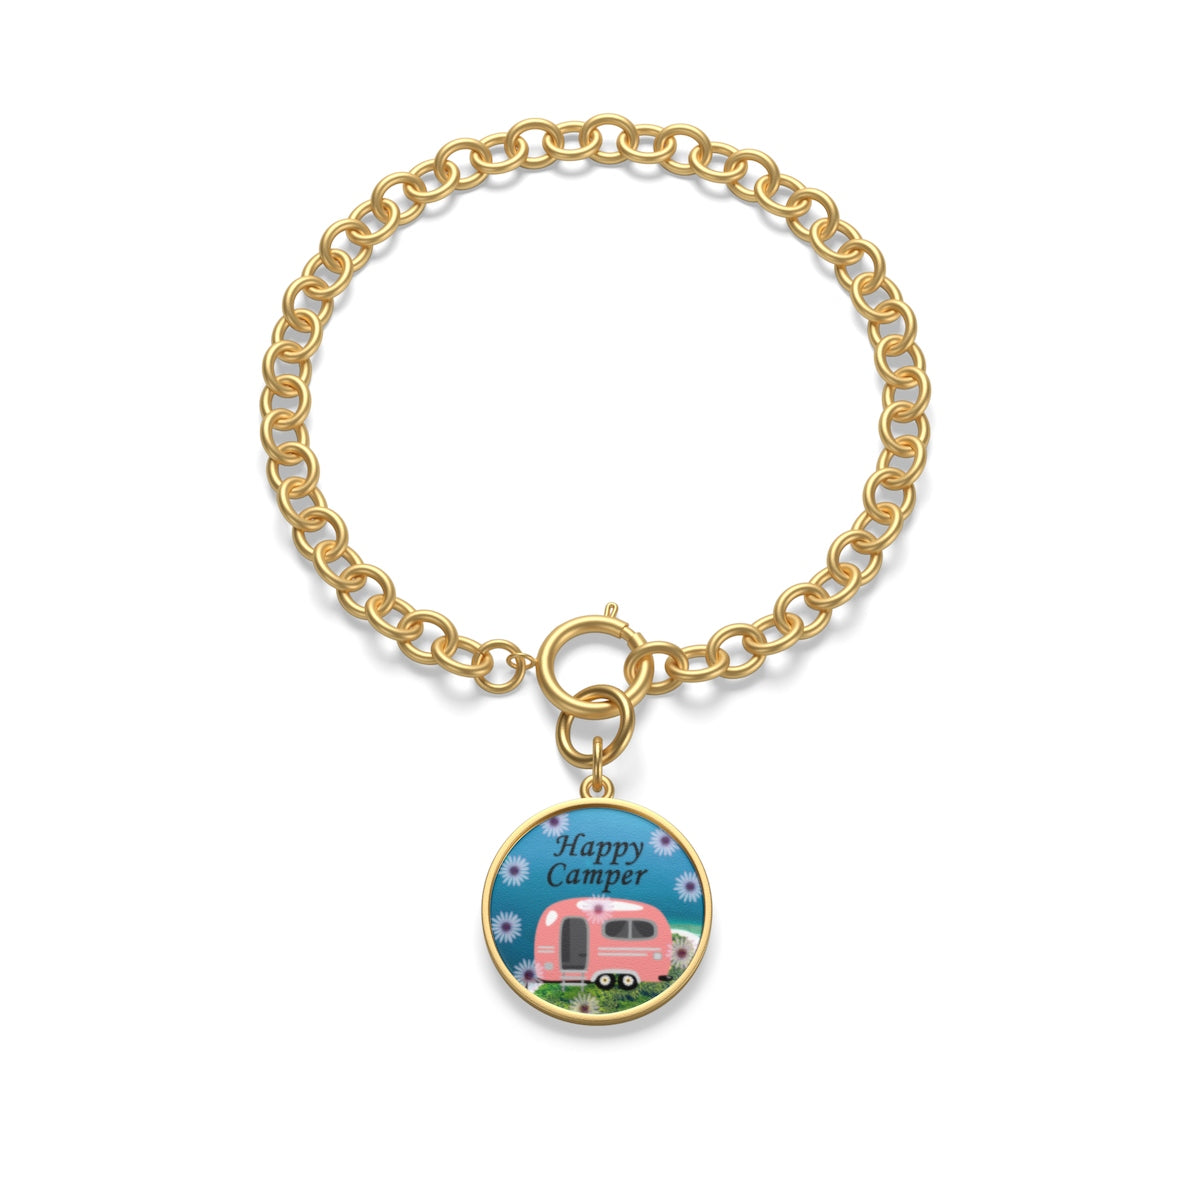 Happy Camper Chain Bracelet